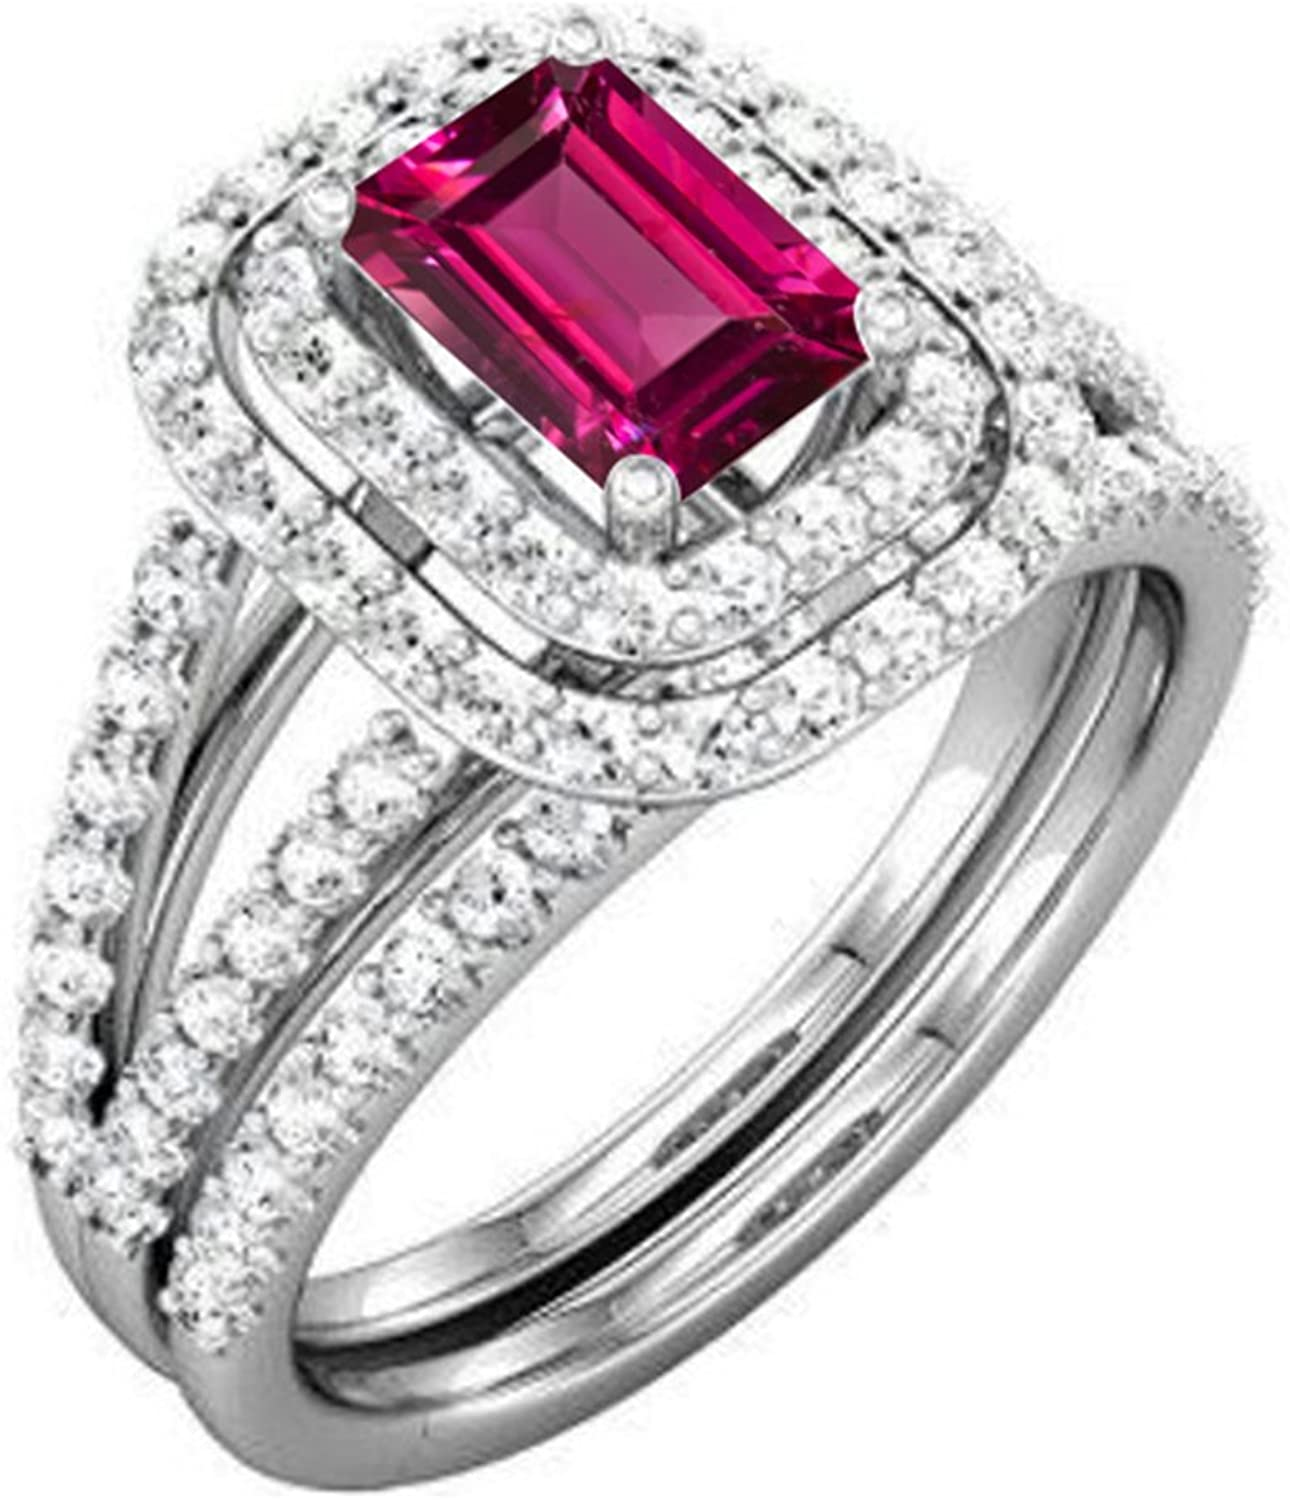 Vorra Fashion Smaragd, 925Sterling-Silber mit Rhodolite Damen Braut-Ring-Set